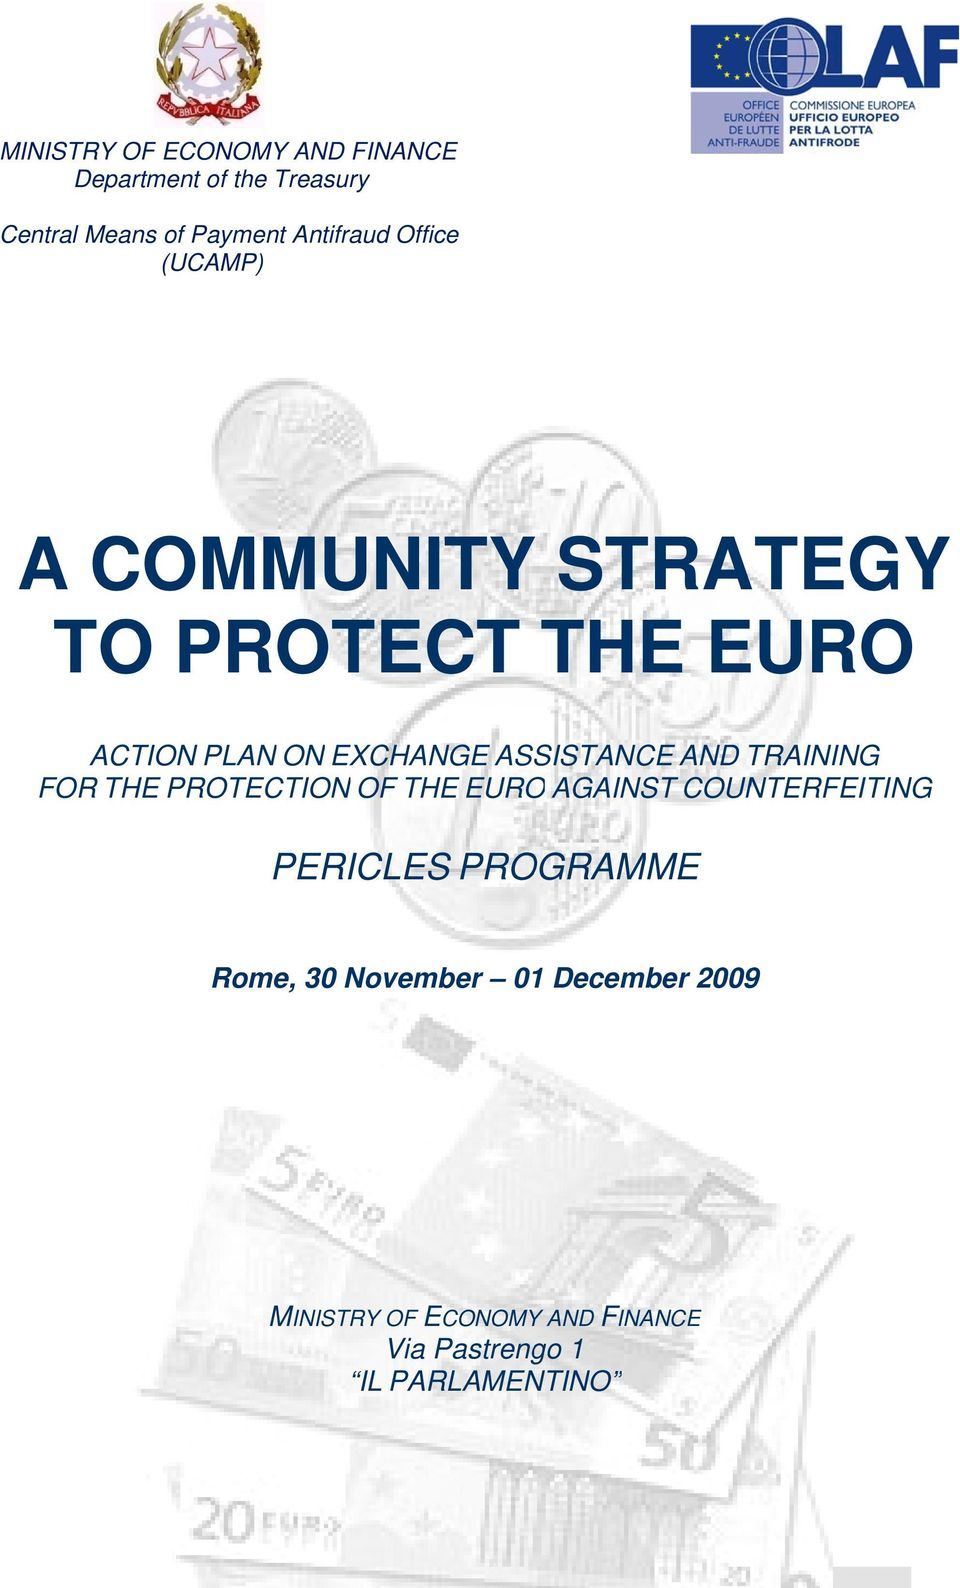 ASSISTANCE AND TRAINING FOR THE PROTECTION OF THE EURO AGAINST COUNTERFEITING PERICLES